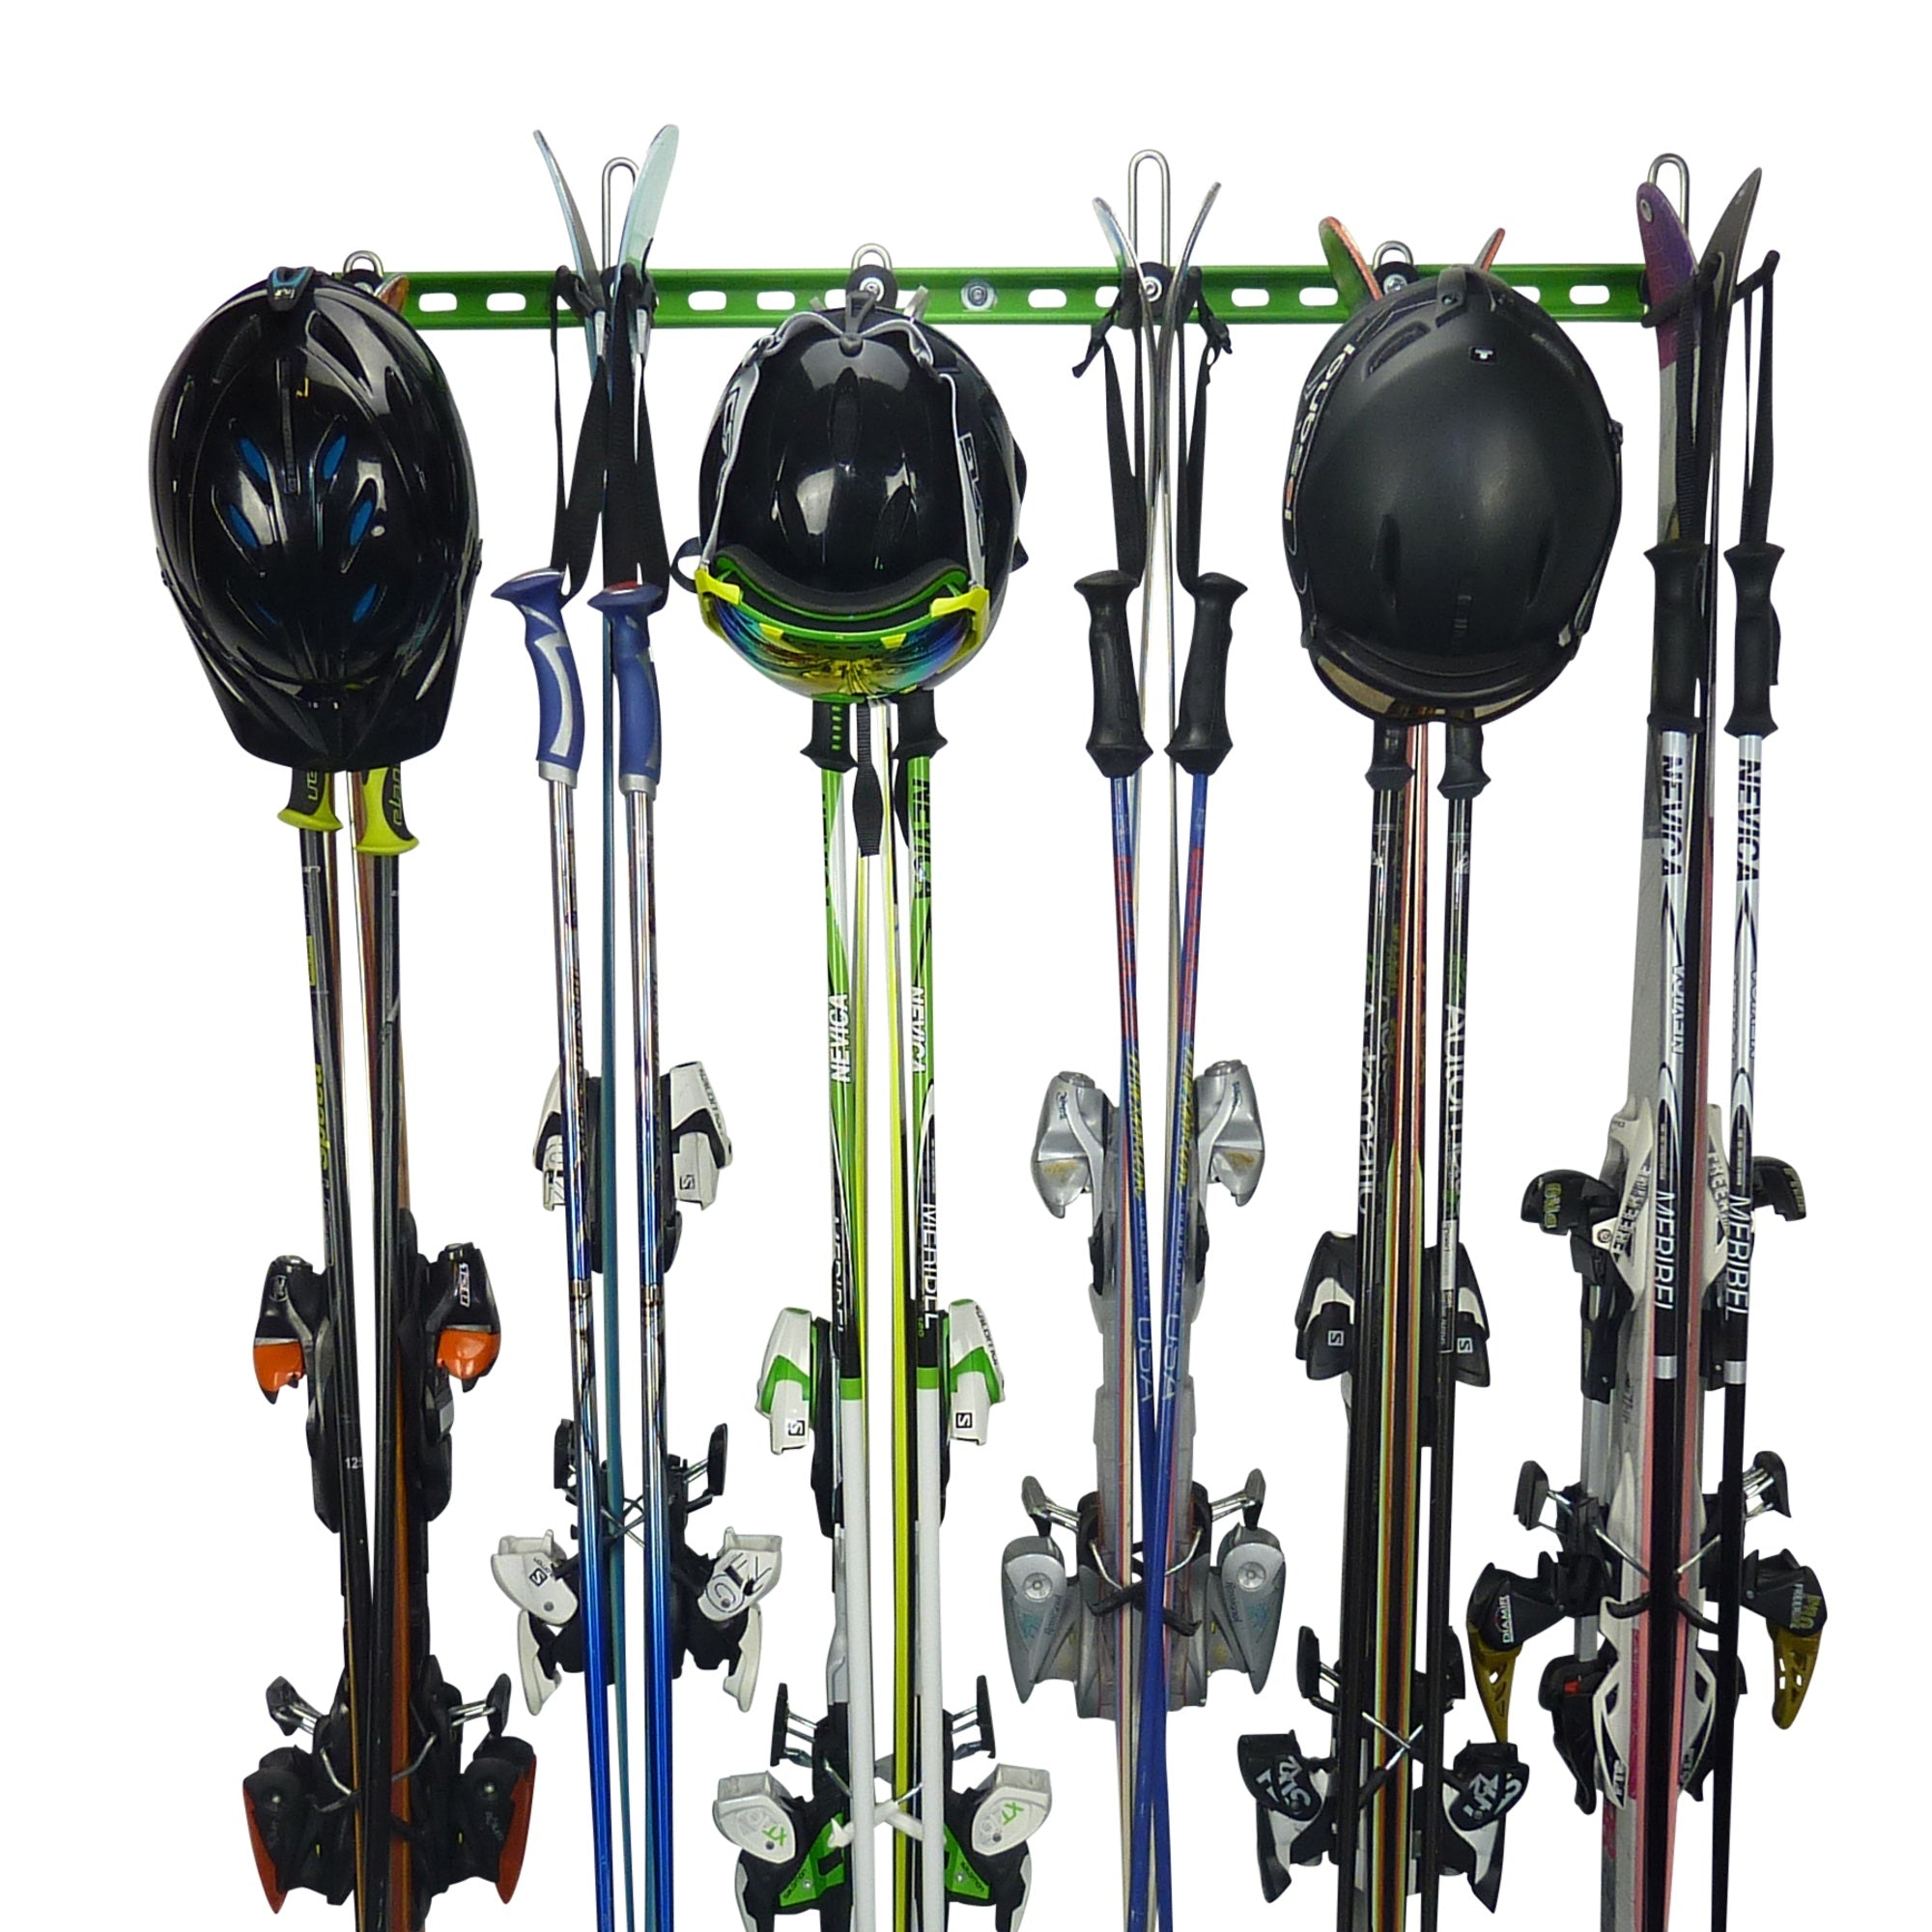 Ski wall mount. Wall Ski Rack and Ski Hanger for up to 6 pairs of skis